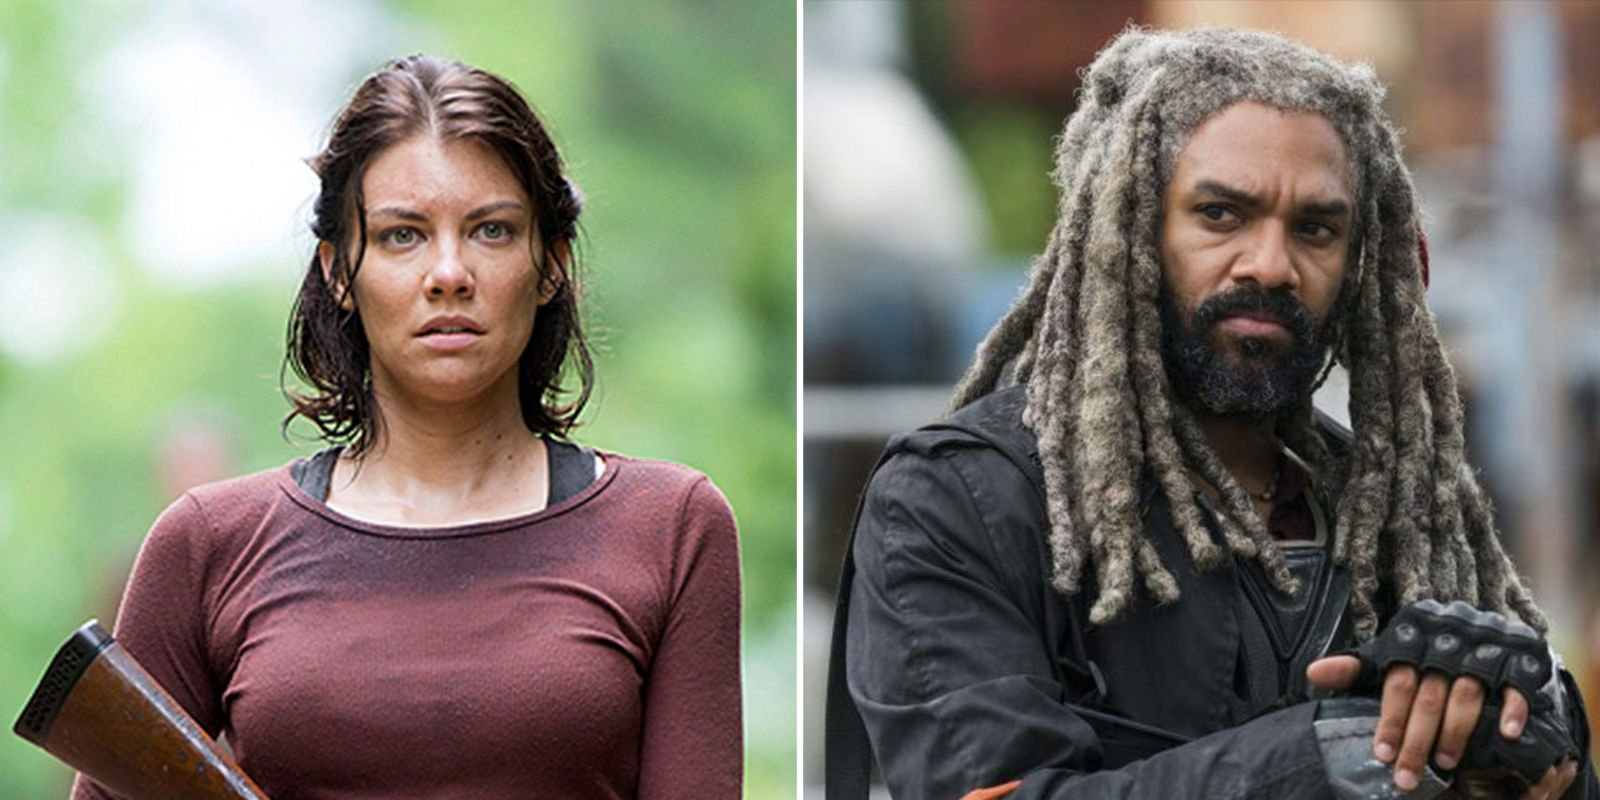 The Walking Dead's Ezekiel demands AMC give Lauren Cohan more pay